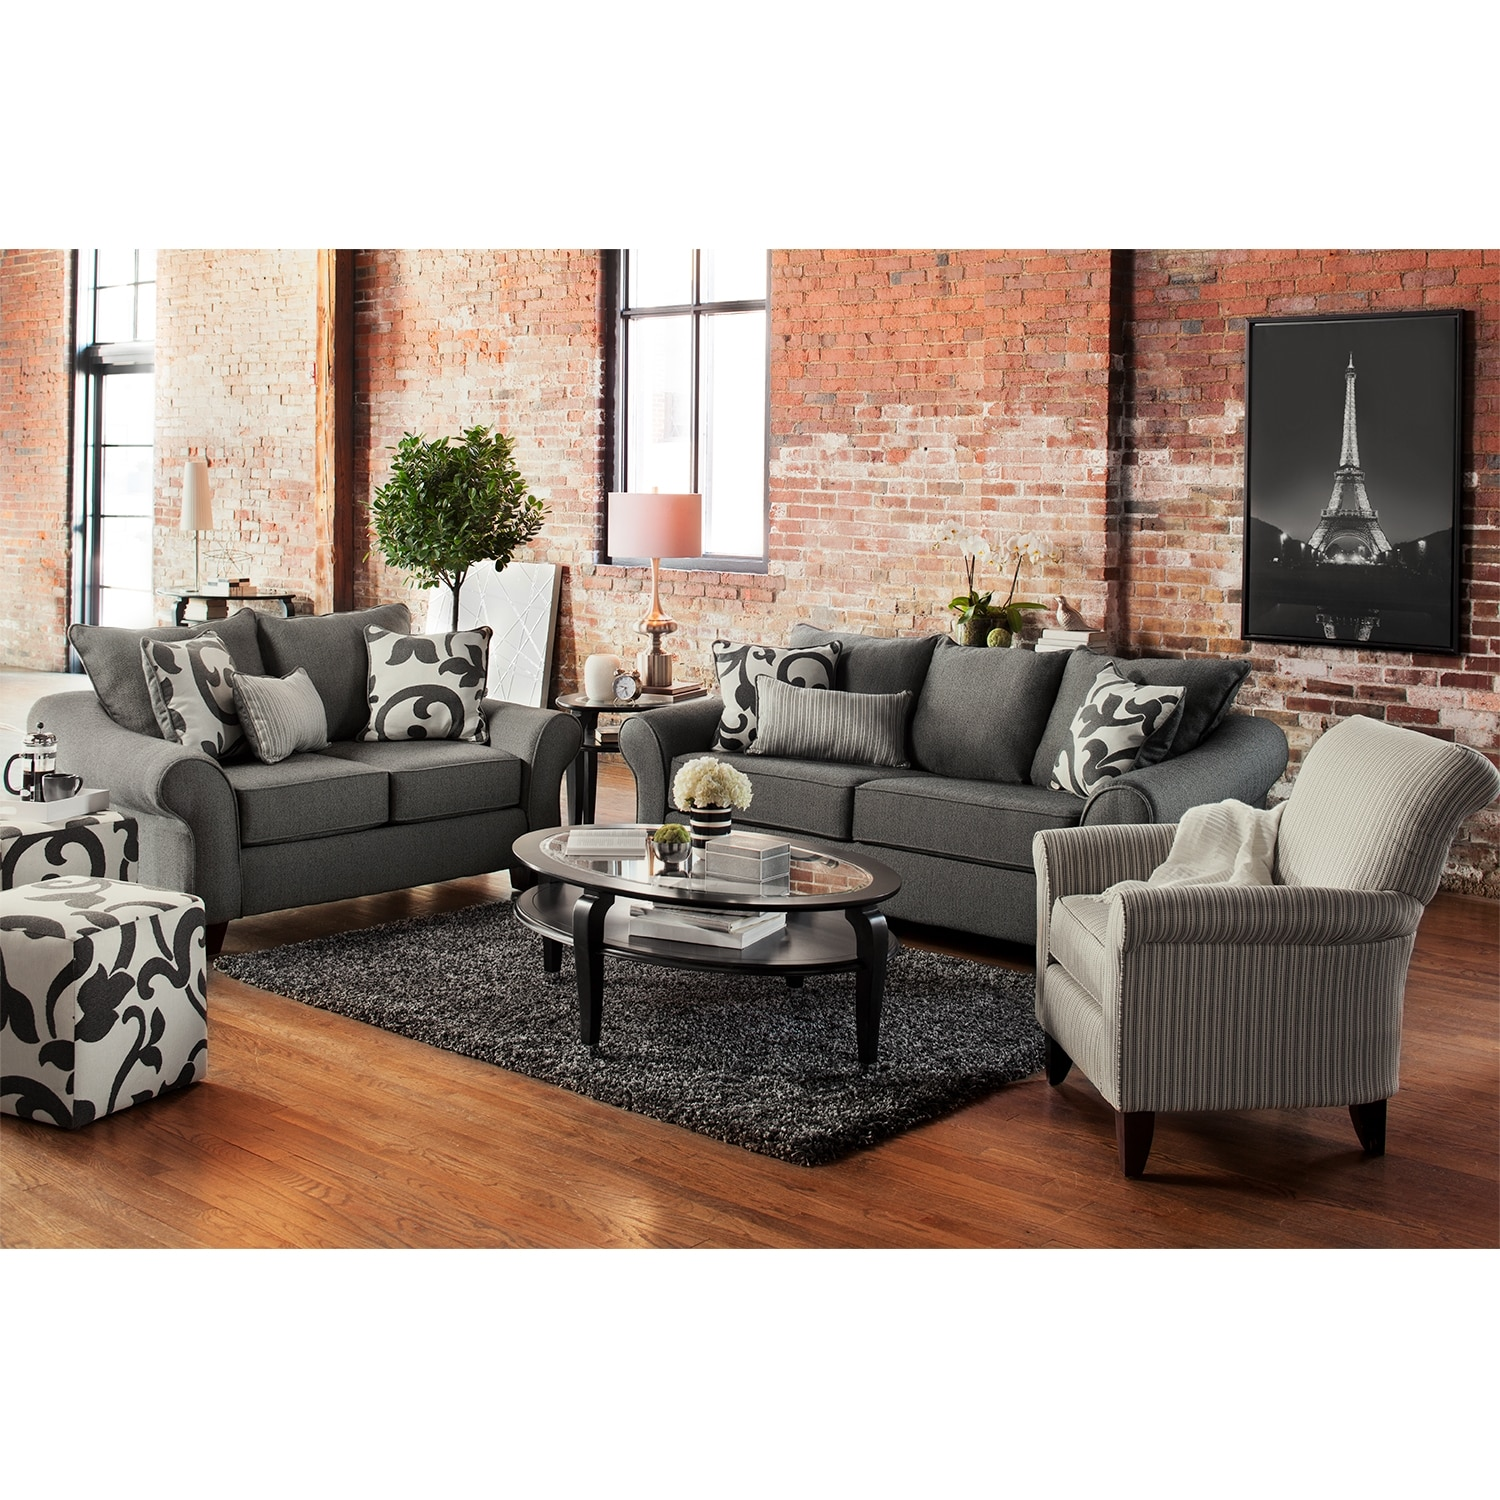 Colette sofa gray value city furniture for Living room 2 sofas